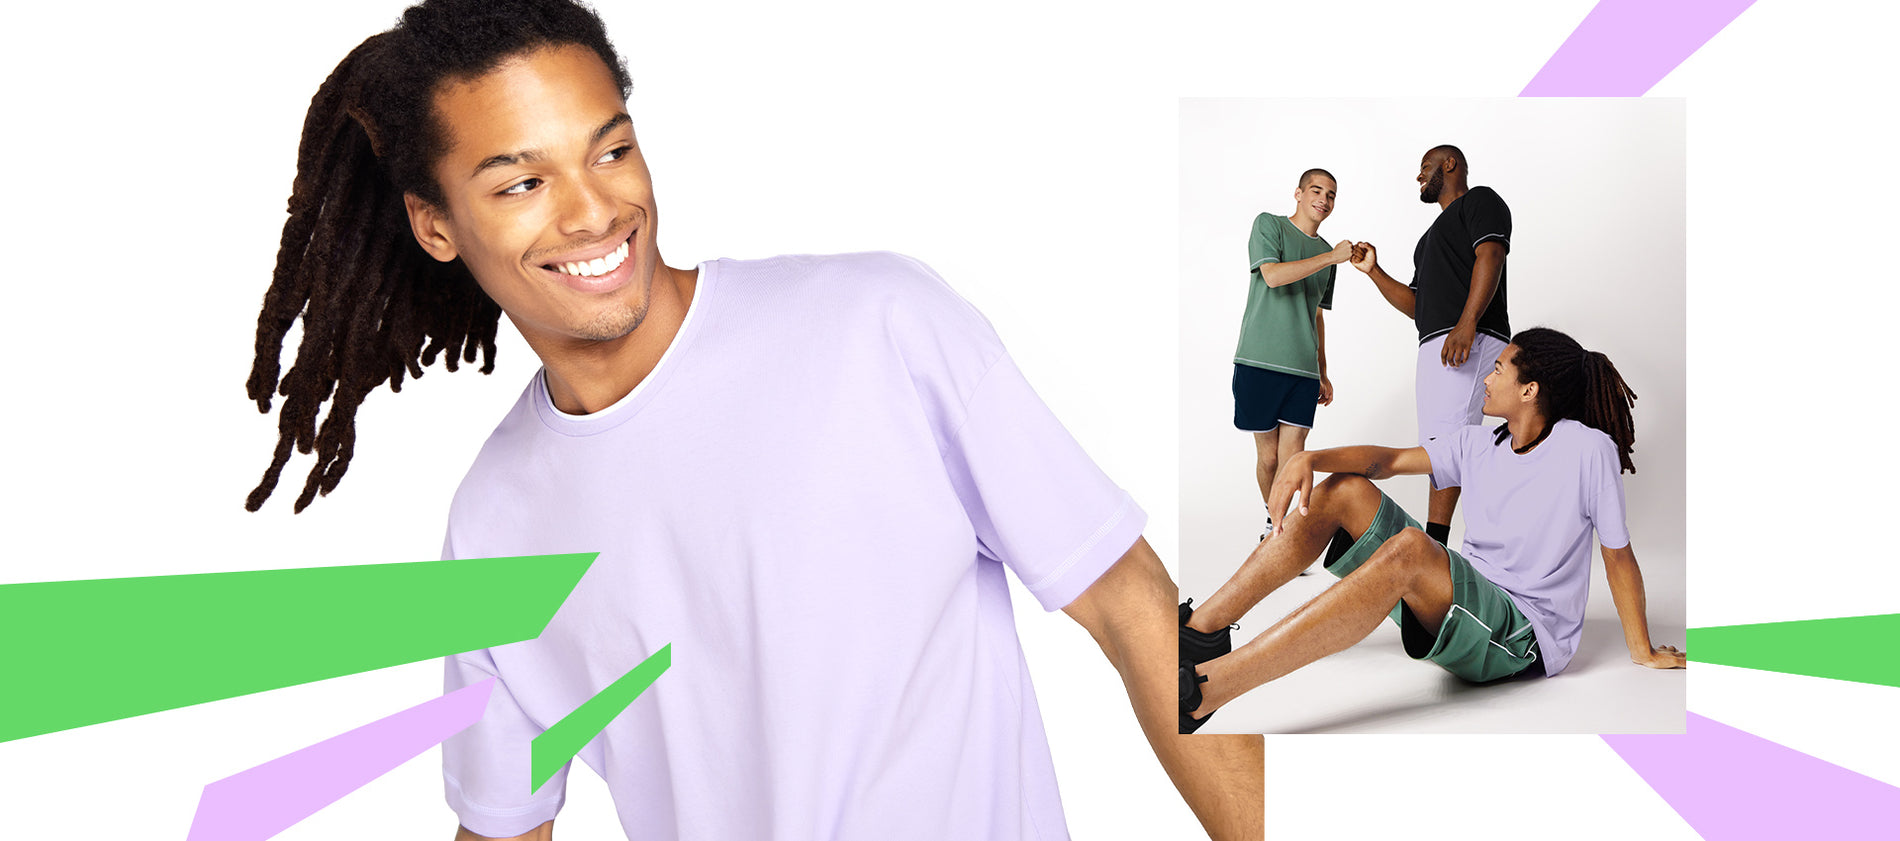 Models wearing the new Recess collection in Green and Purple.